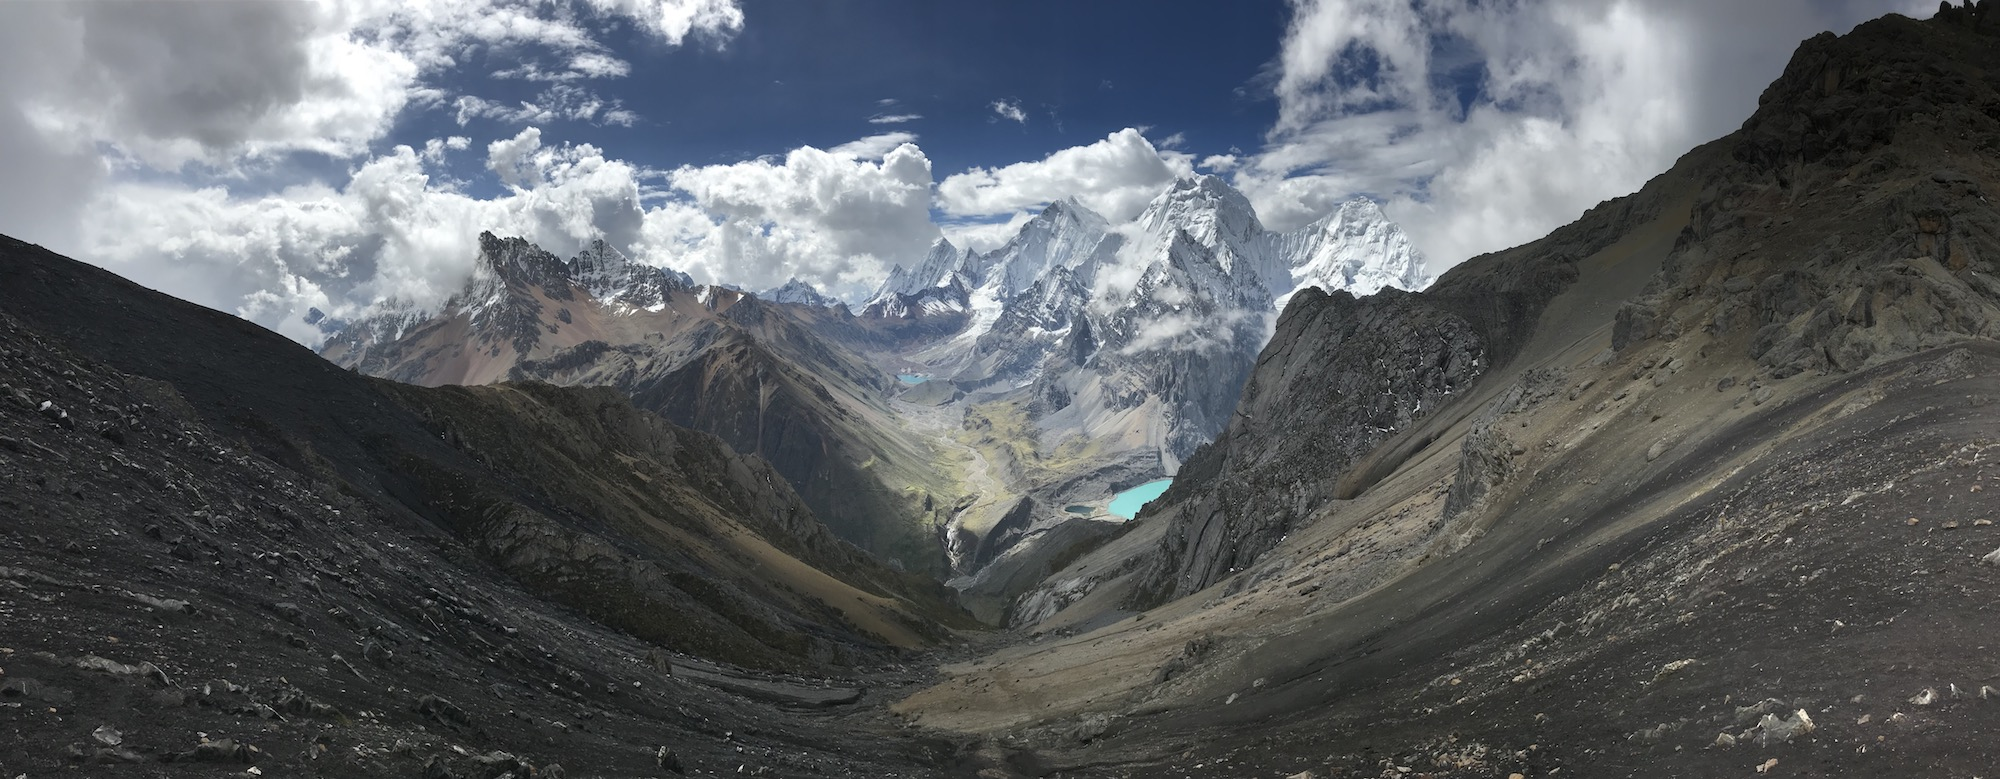 View of the Cordillera Huayhuash